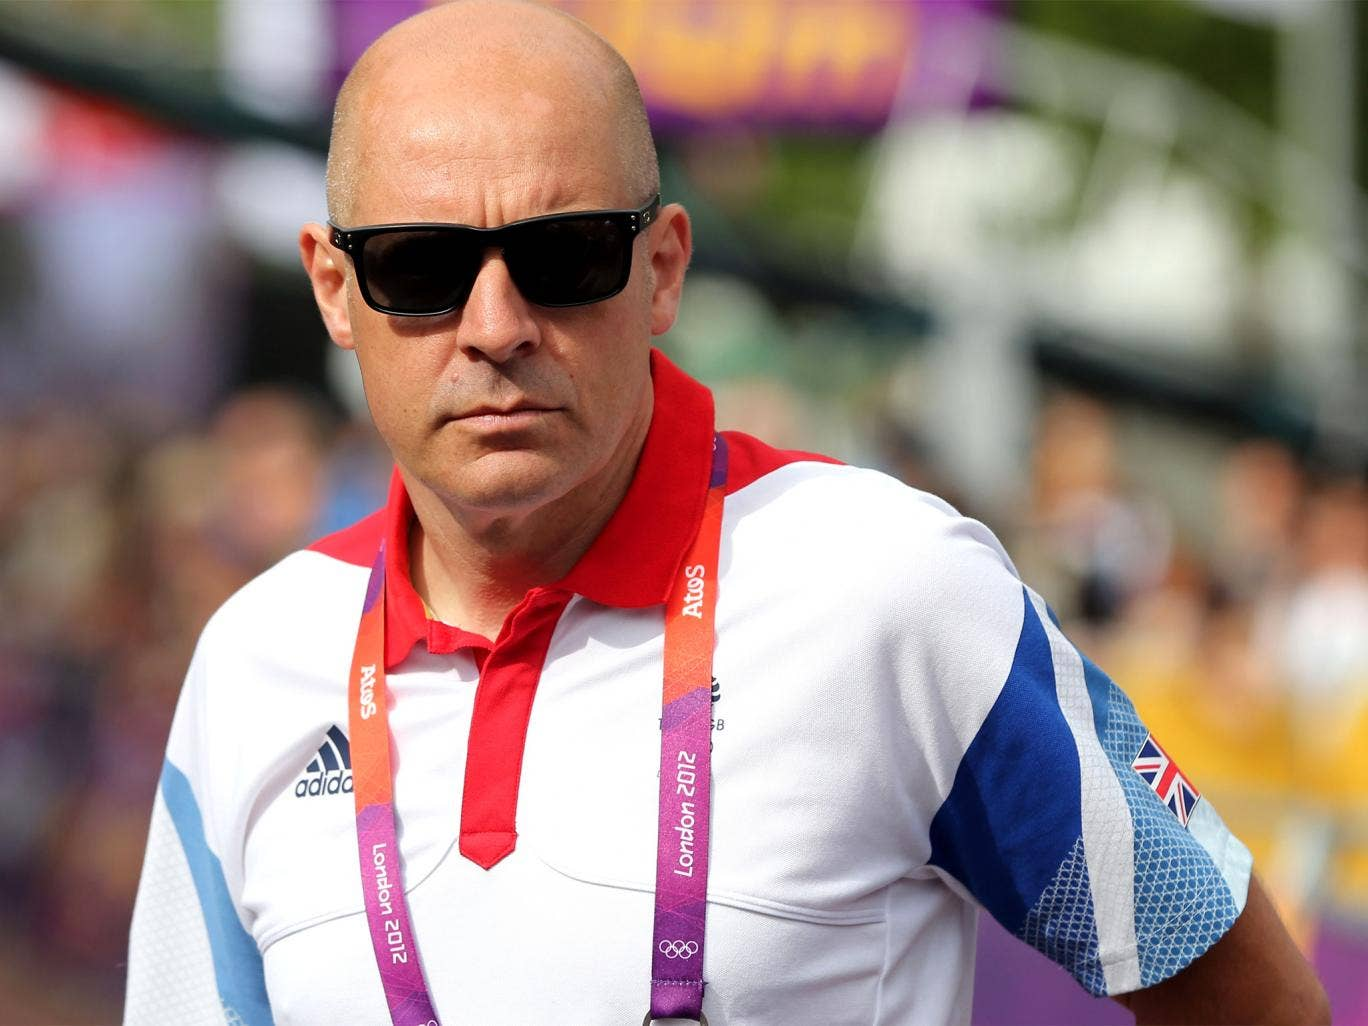 Team Sky manager Dave Brailsford admitted hiring Geert Leinders was an error